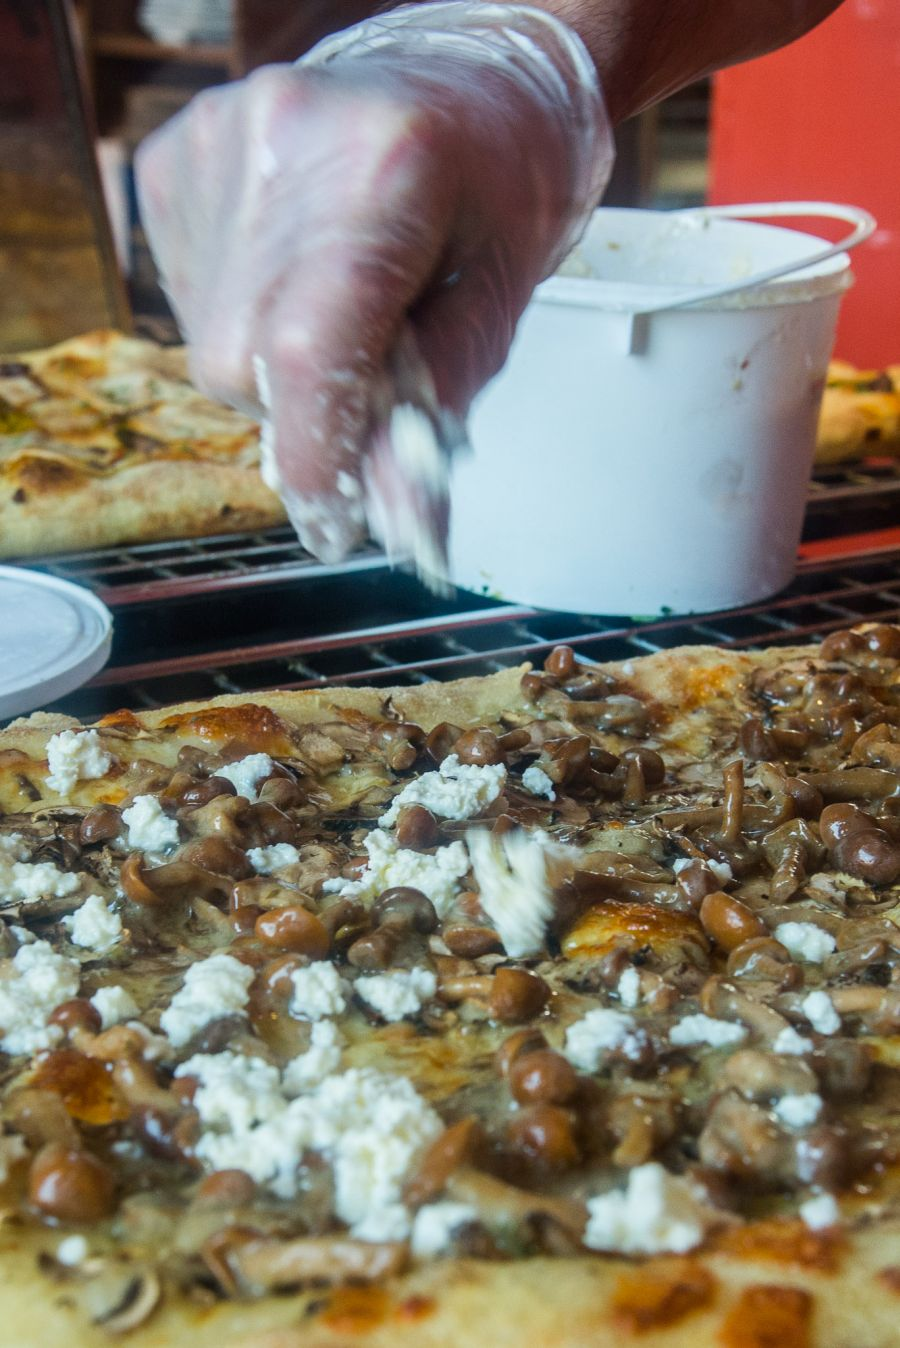 Crumbling ricotta over the mushroom trio pizza